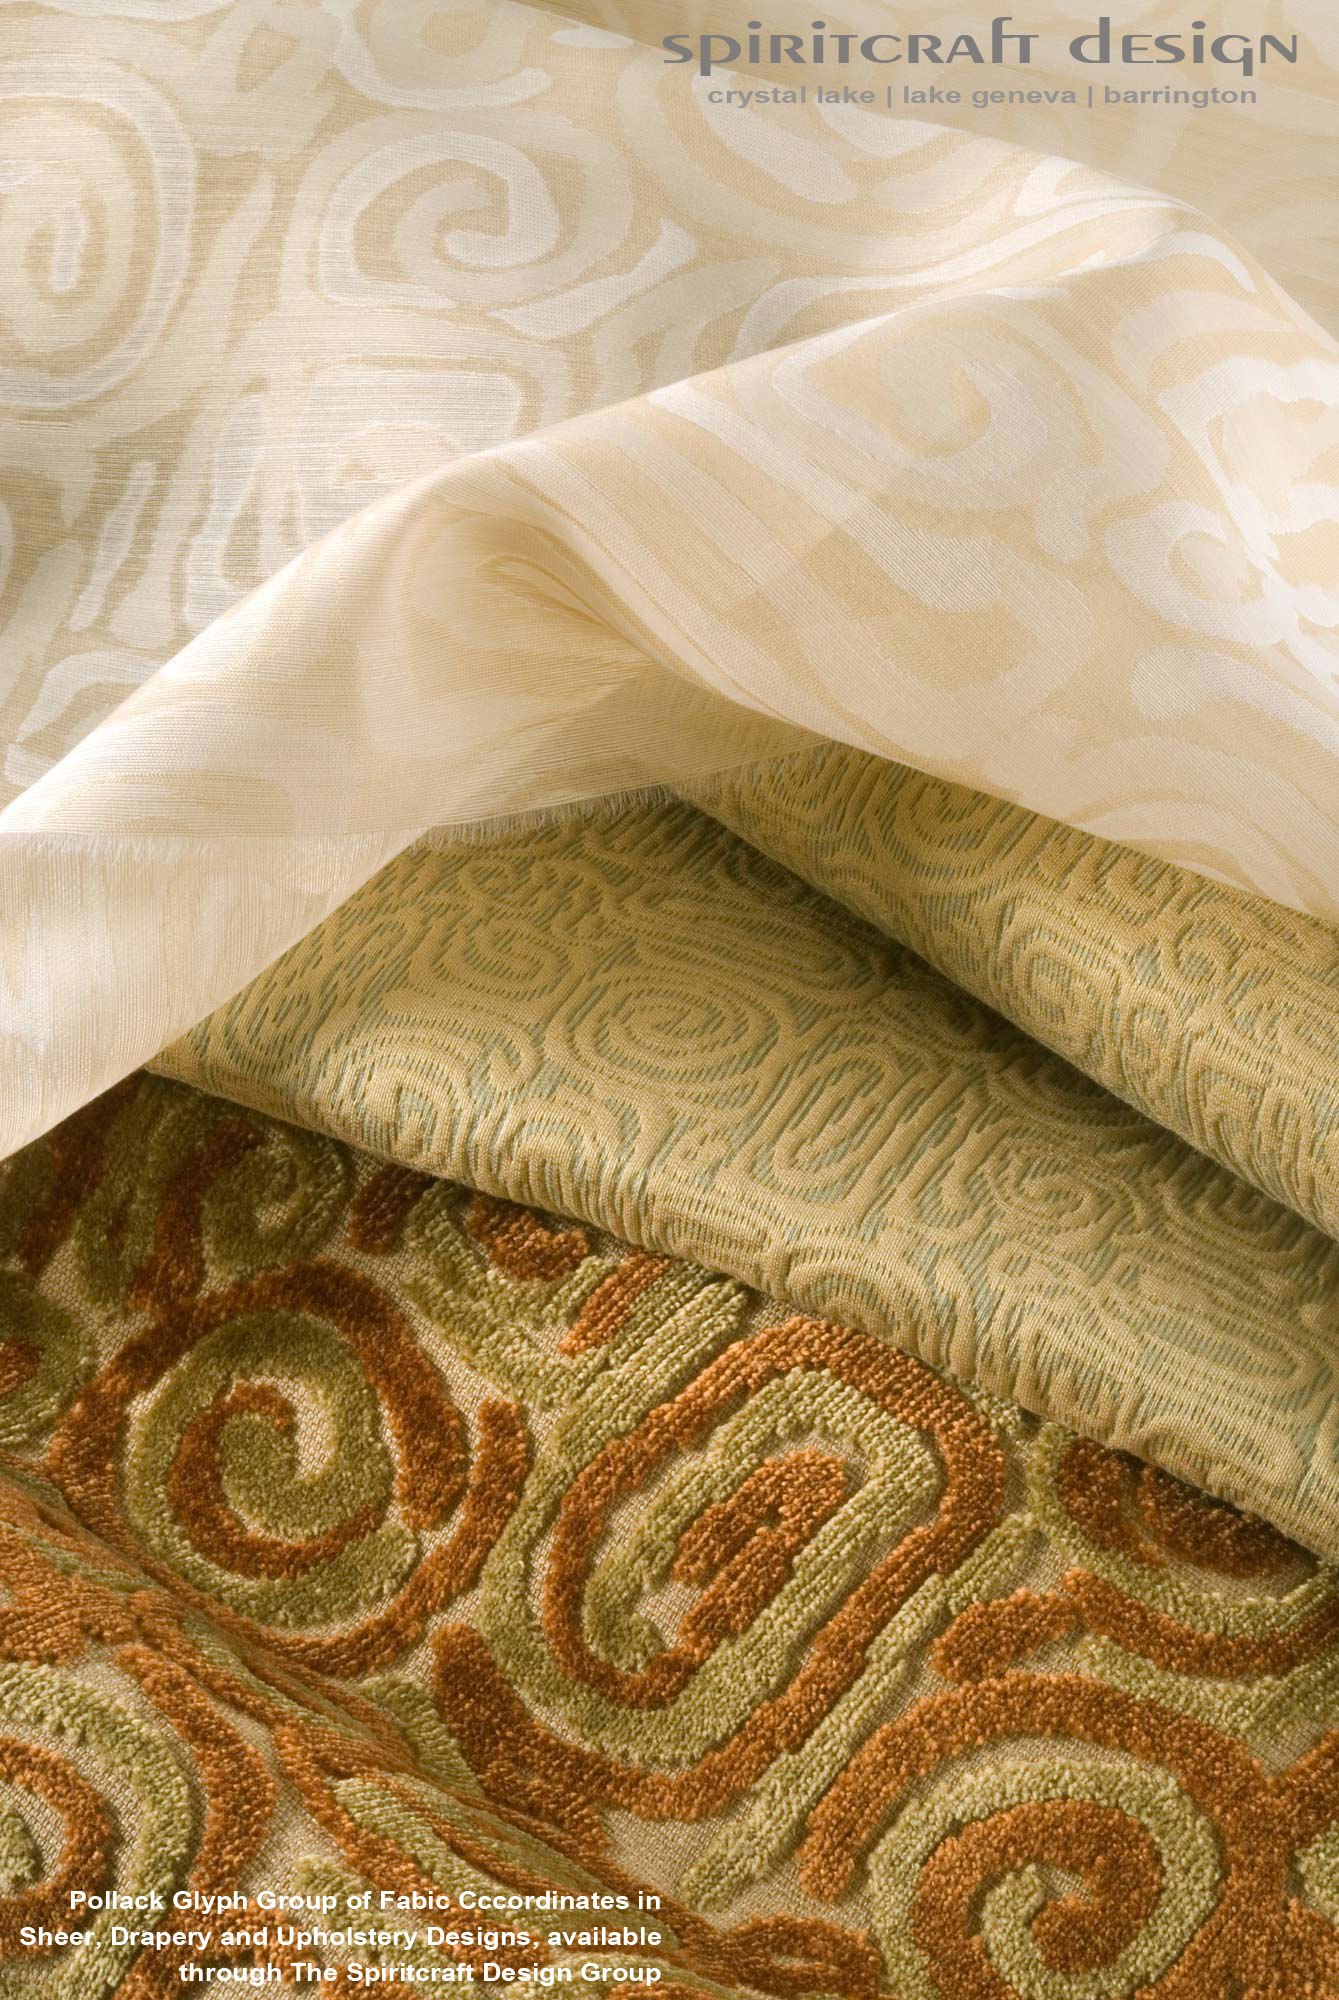 Designer Upholstery And Drapery Fabrics For Home Decor In Crystal Lake And  Barrington, Illinois By Part 98